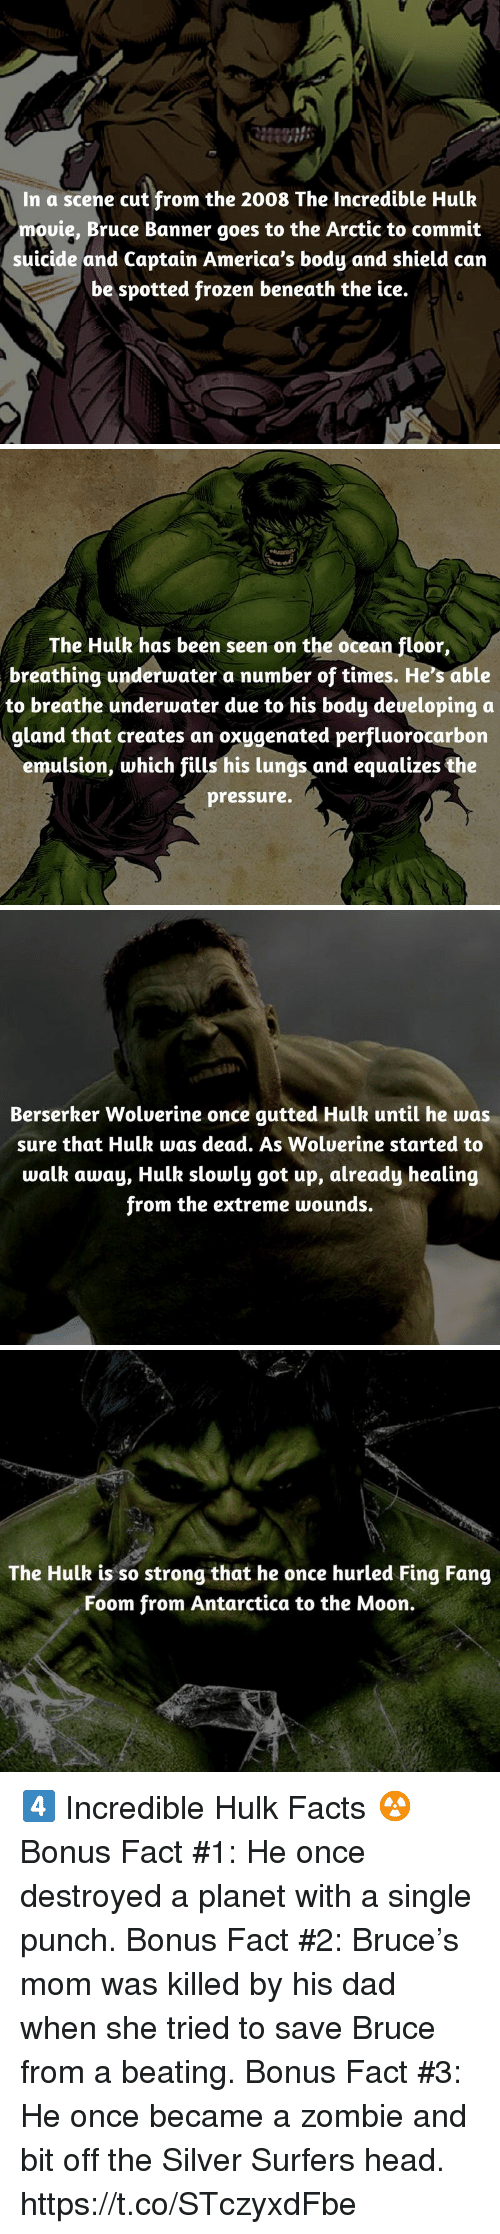 Dad, Facts, and Frozen: In a scene cut from the 2008 The Incredible Hulk  mouie, Bruce Banner goes to the Arctic to commit  suicide and Captain America's body and shield can  be spotted frozen beneath the ice.   The Hulk has been seen on the ocean floor,  breathing underwater a number of times. He's able  to breathe underwater due to his body deueloping a  gland that creates an oxygenated perfluorocarbon  emulsion, which fills his lungs and equalizes the  pressure.   İM1  Berserker Woluerine once gutted Hulk until he was  sure that Hulk was dead. As Wolverine started to  walk away, Hulk slowly got up, already healing  from the extreme wounds.   The Hulk is so strong that he once hurled Fing Fang  Foom from Antarctica to the Moon. 4️⃣ Incredible Hulk Facts ☢️  Bonus Fact #1: He once destroyed a planet with a single punch.  Bonus Fact #2: Bruce's mom was killed by his dad when she tried to save Bruce from a beating.  Bonus Fact #3: He once became a zombie and bit off the Silver Surfers head. https://t.co/STczyxdFbe